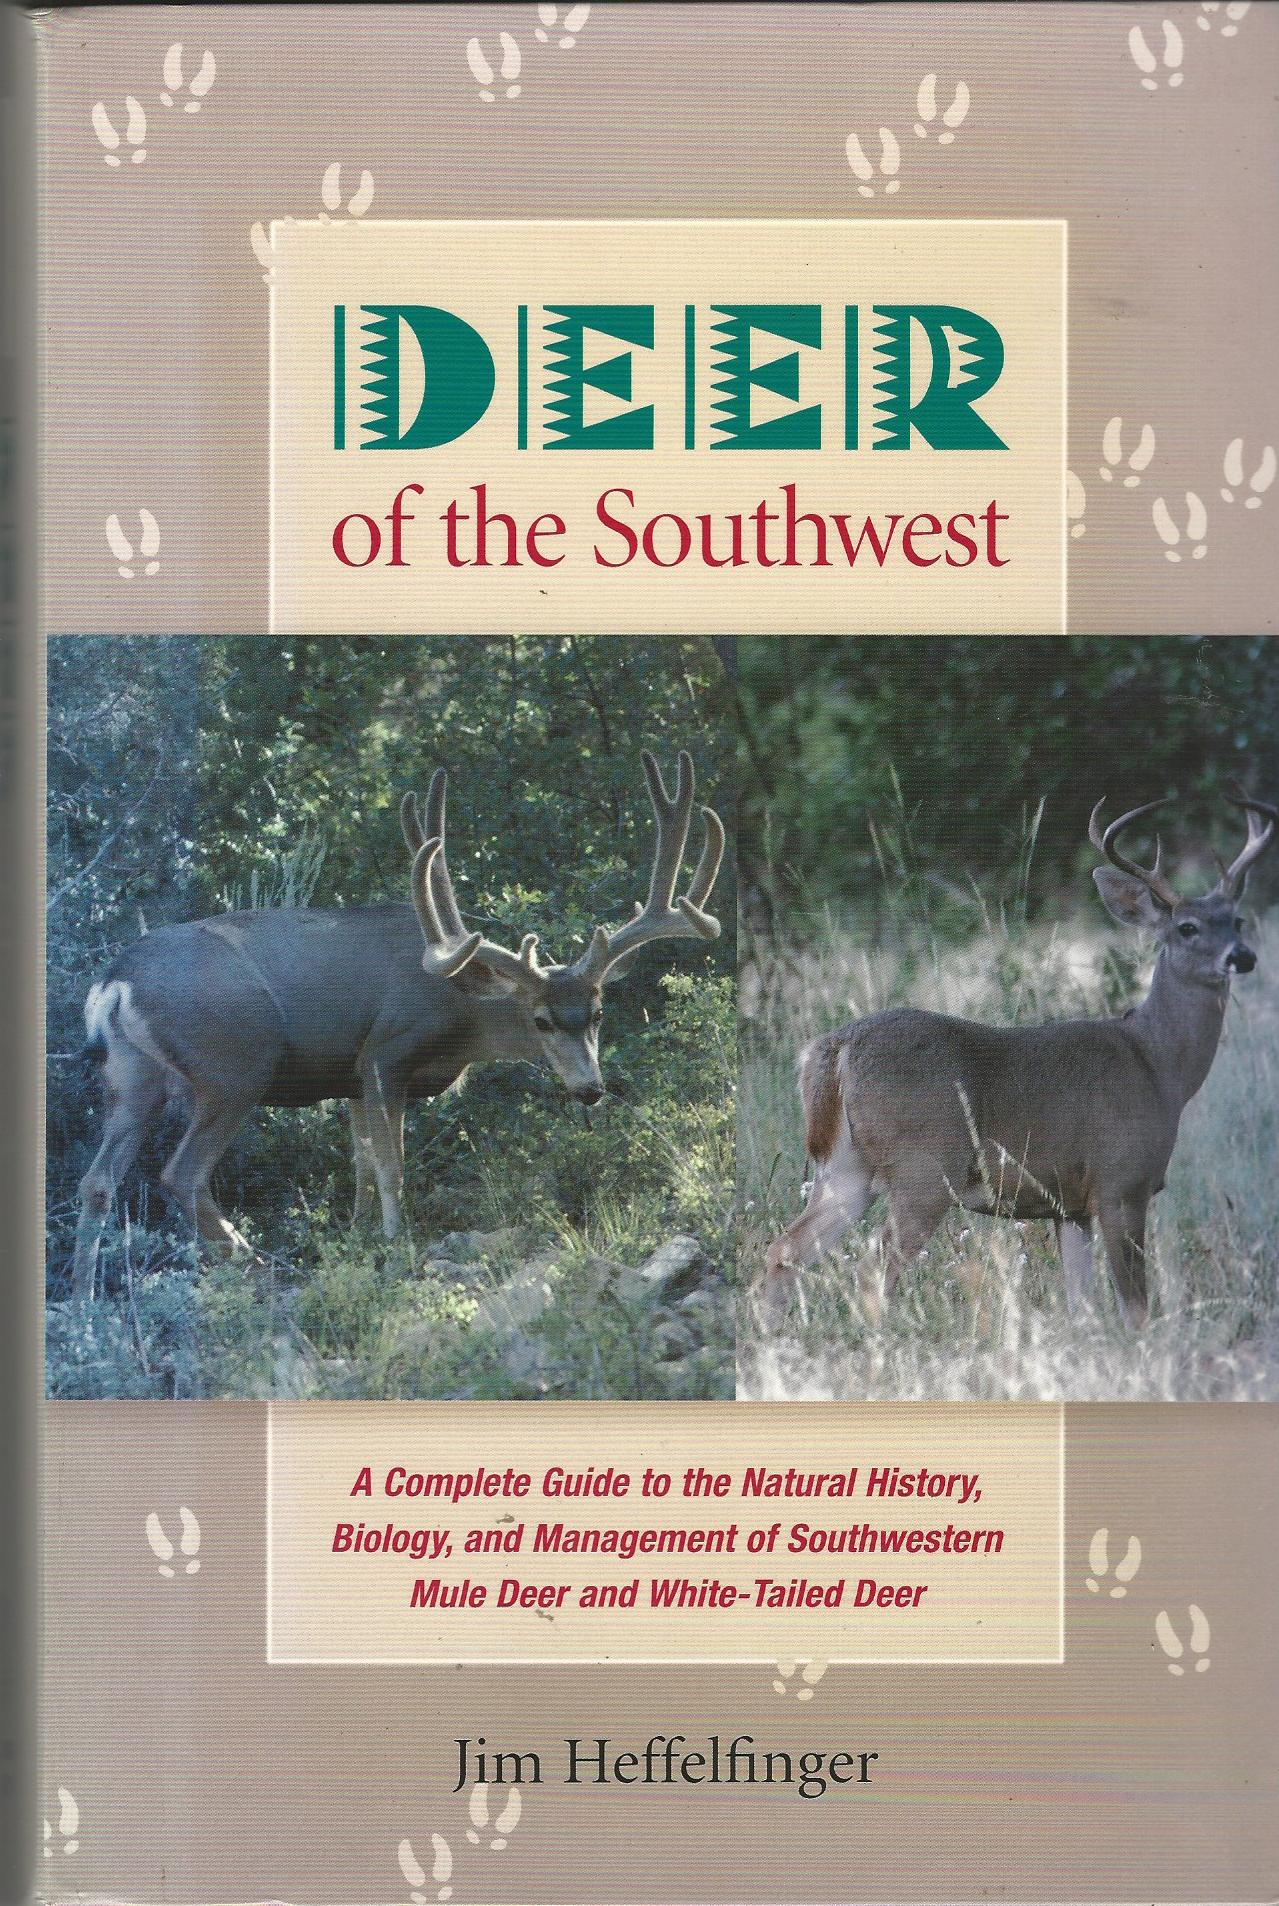 Image for Deer of the Southwest: A Complete Guide to the Natural History, Biology, and Management of Southwestern Mule Deer and White-tailed Deer